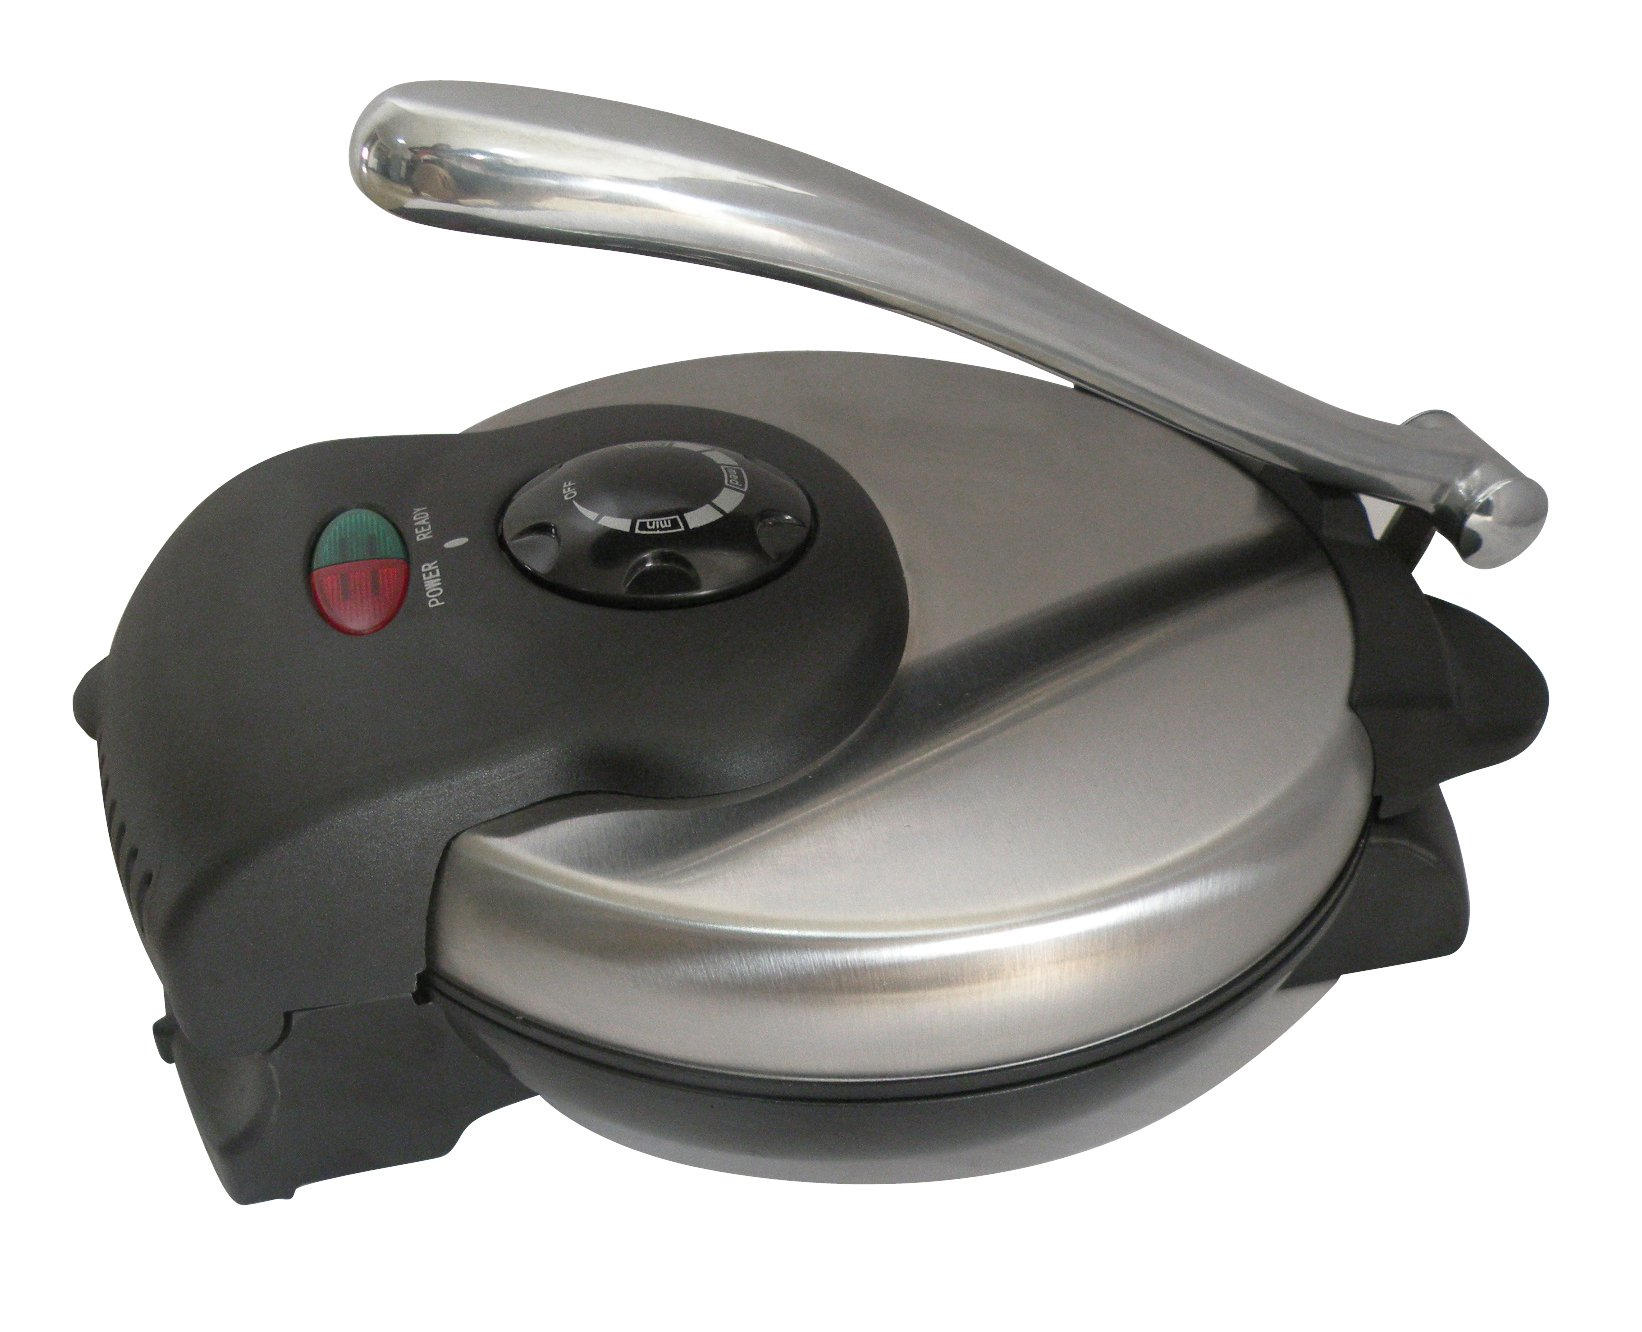 Brentwood TS126 Non-Stick in Stainless Steel Tortilla Maker by Brentwood